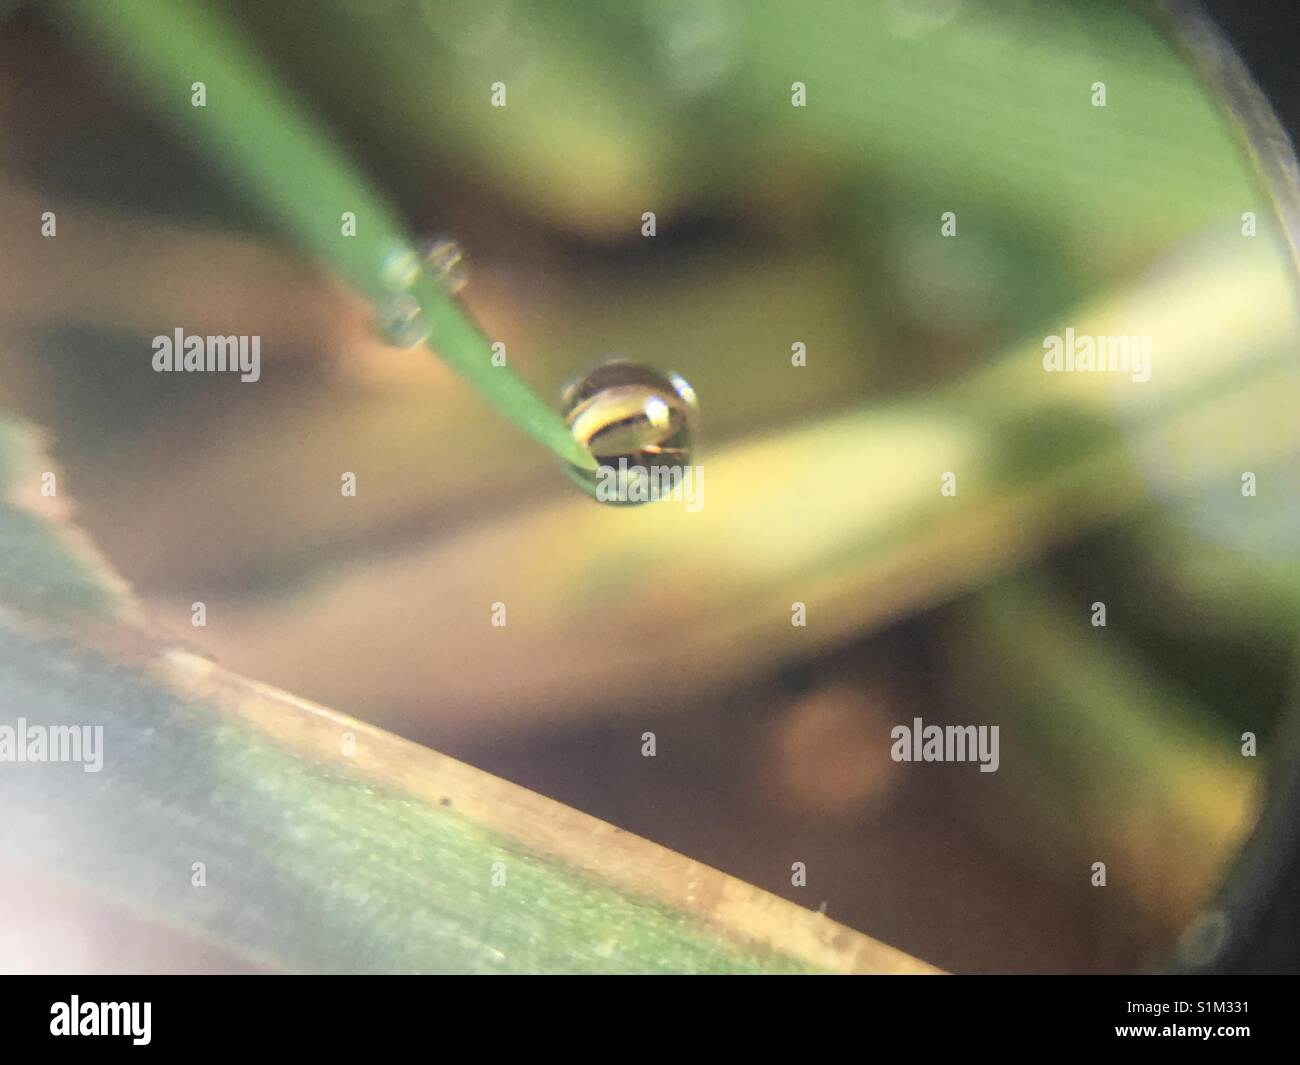 Droplet of water on a blade of grass - Stock Image